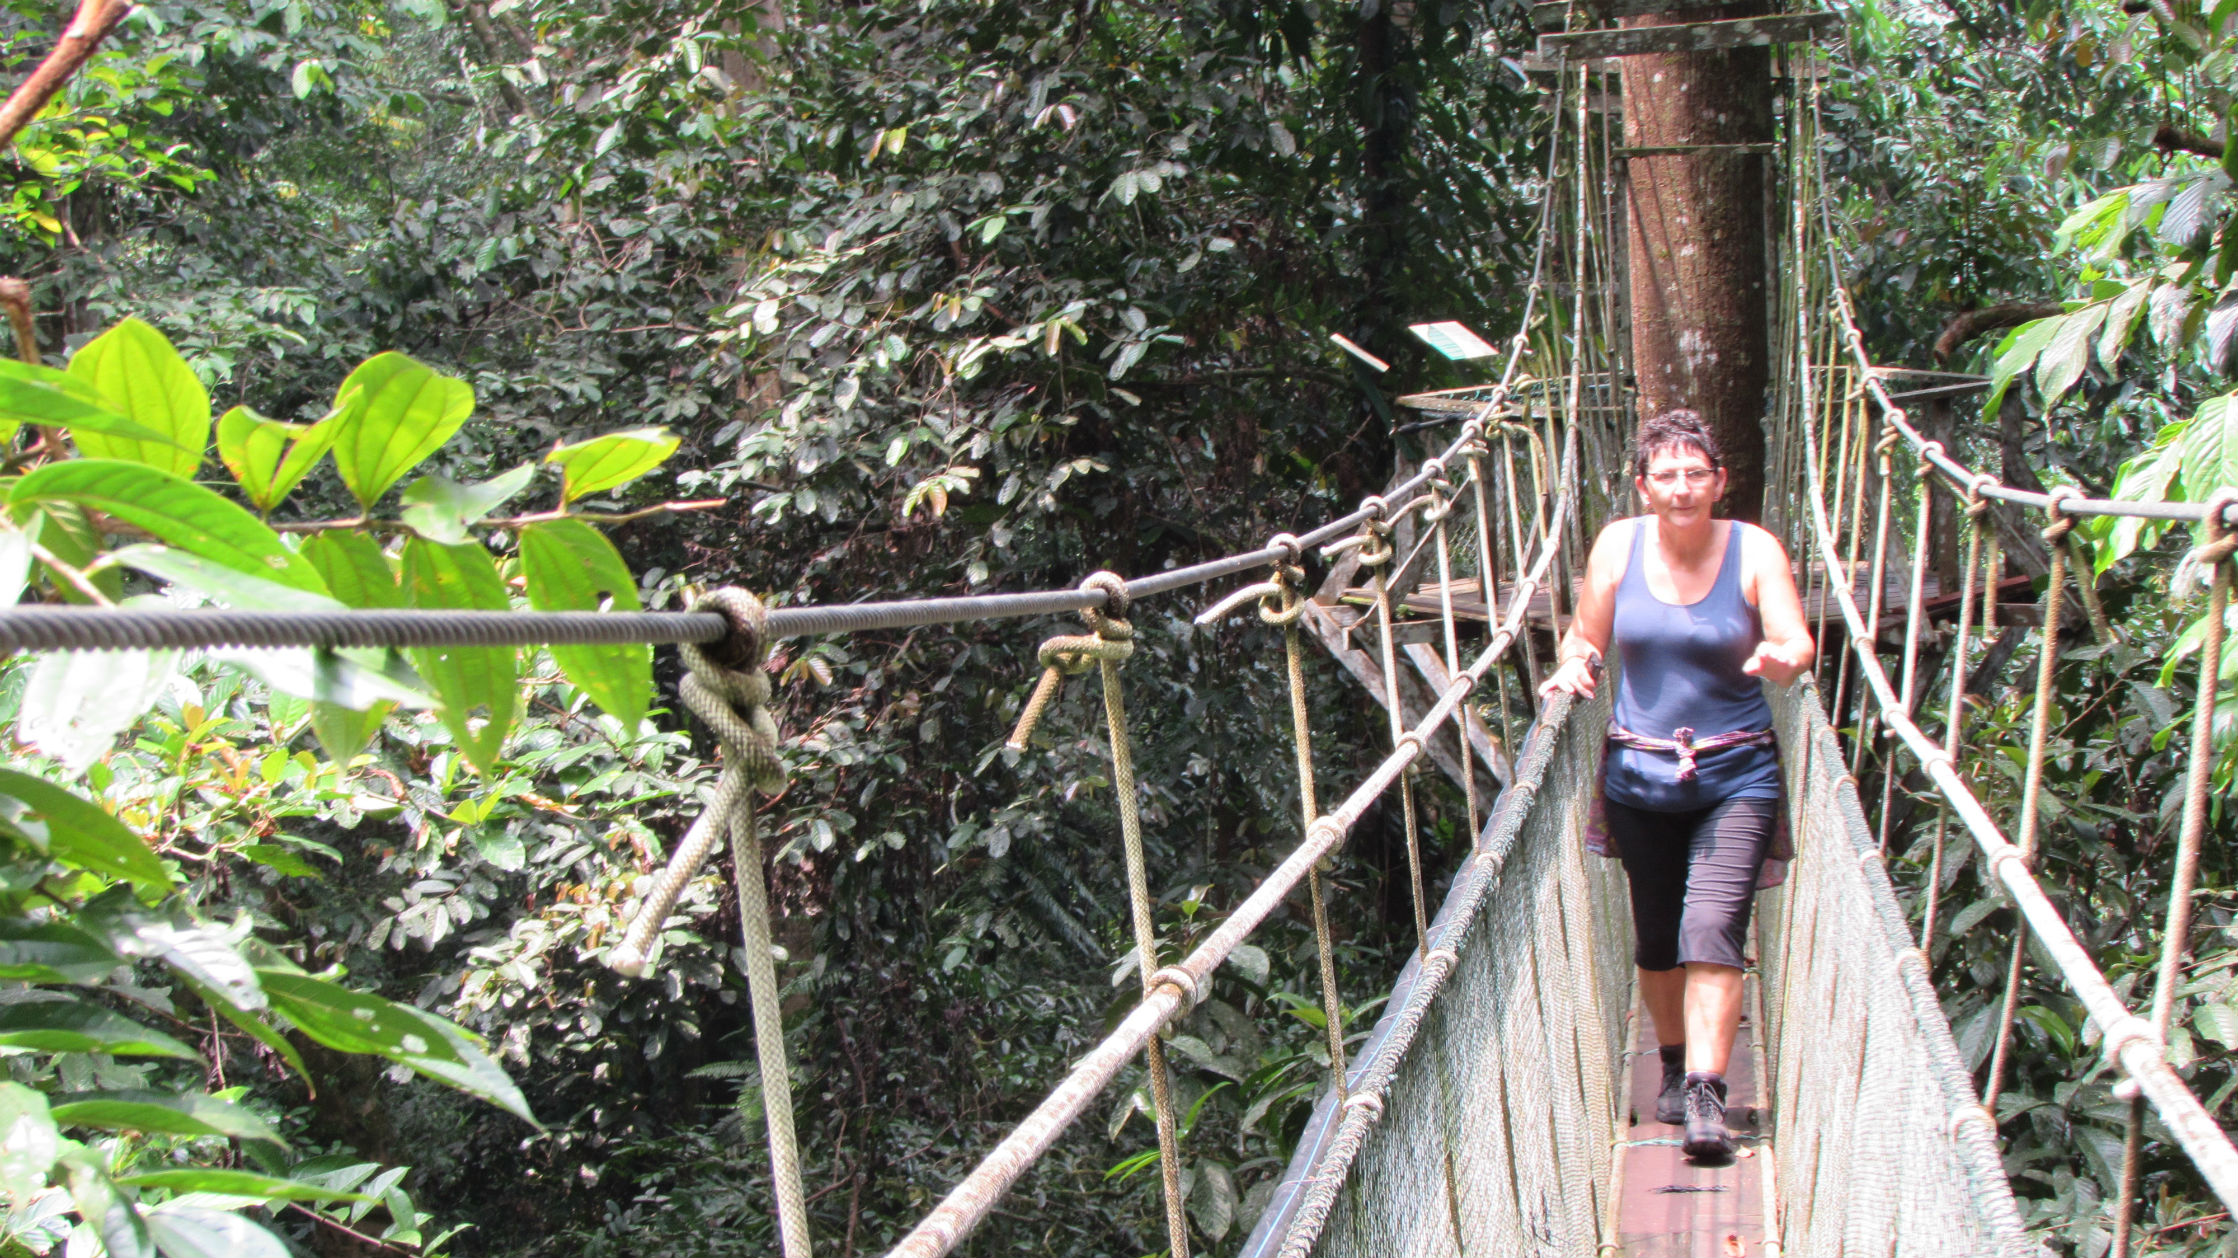 Canopy Bridge 25 meters above ground